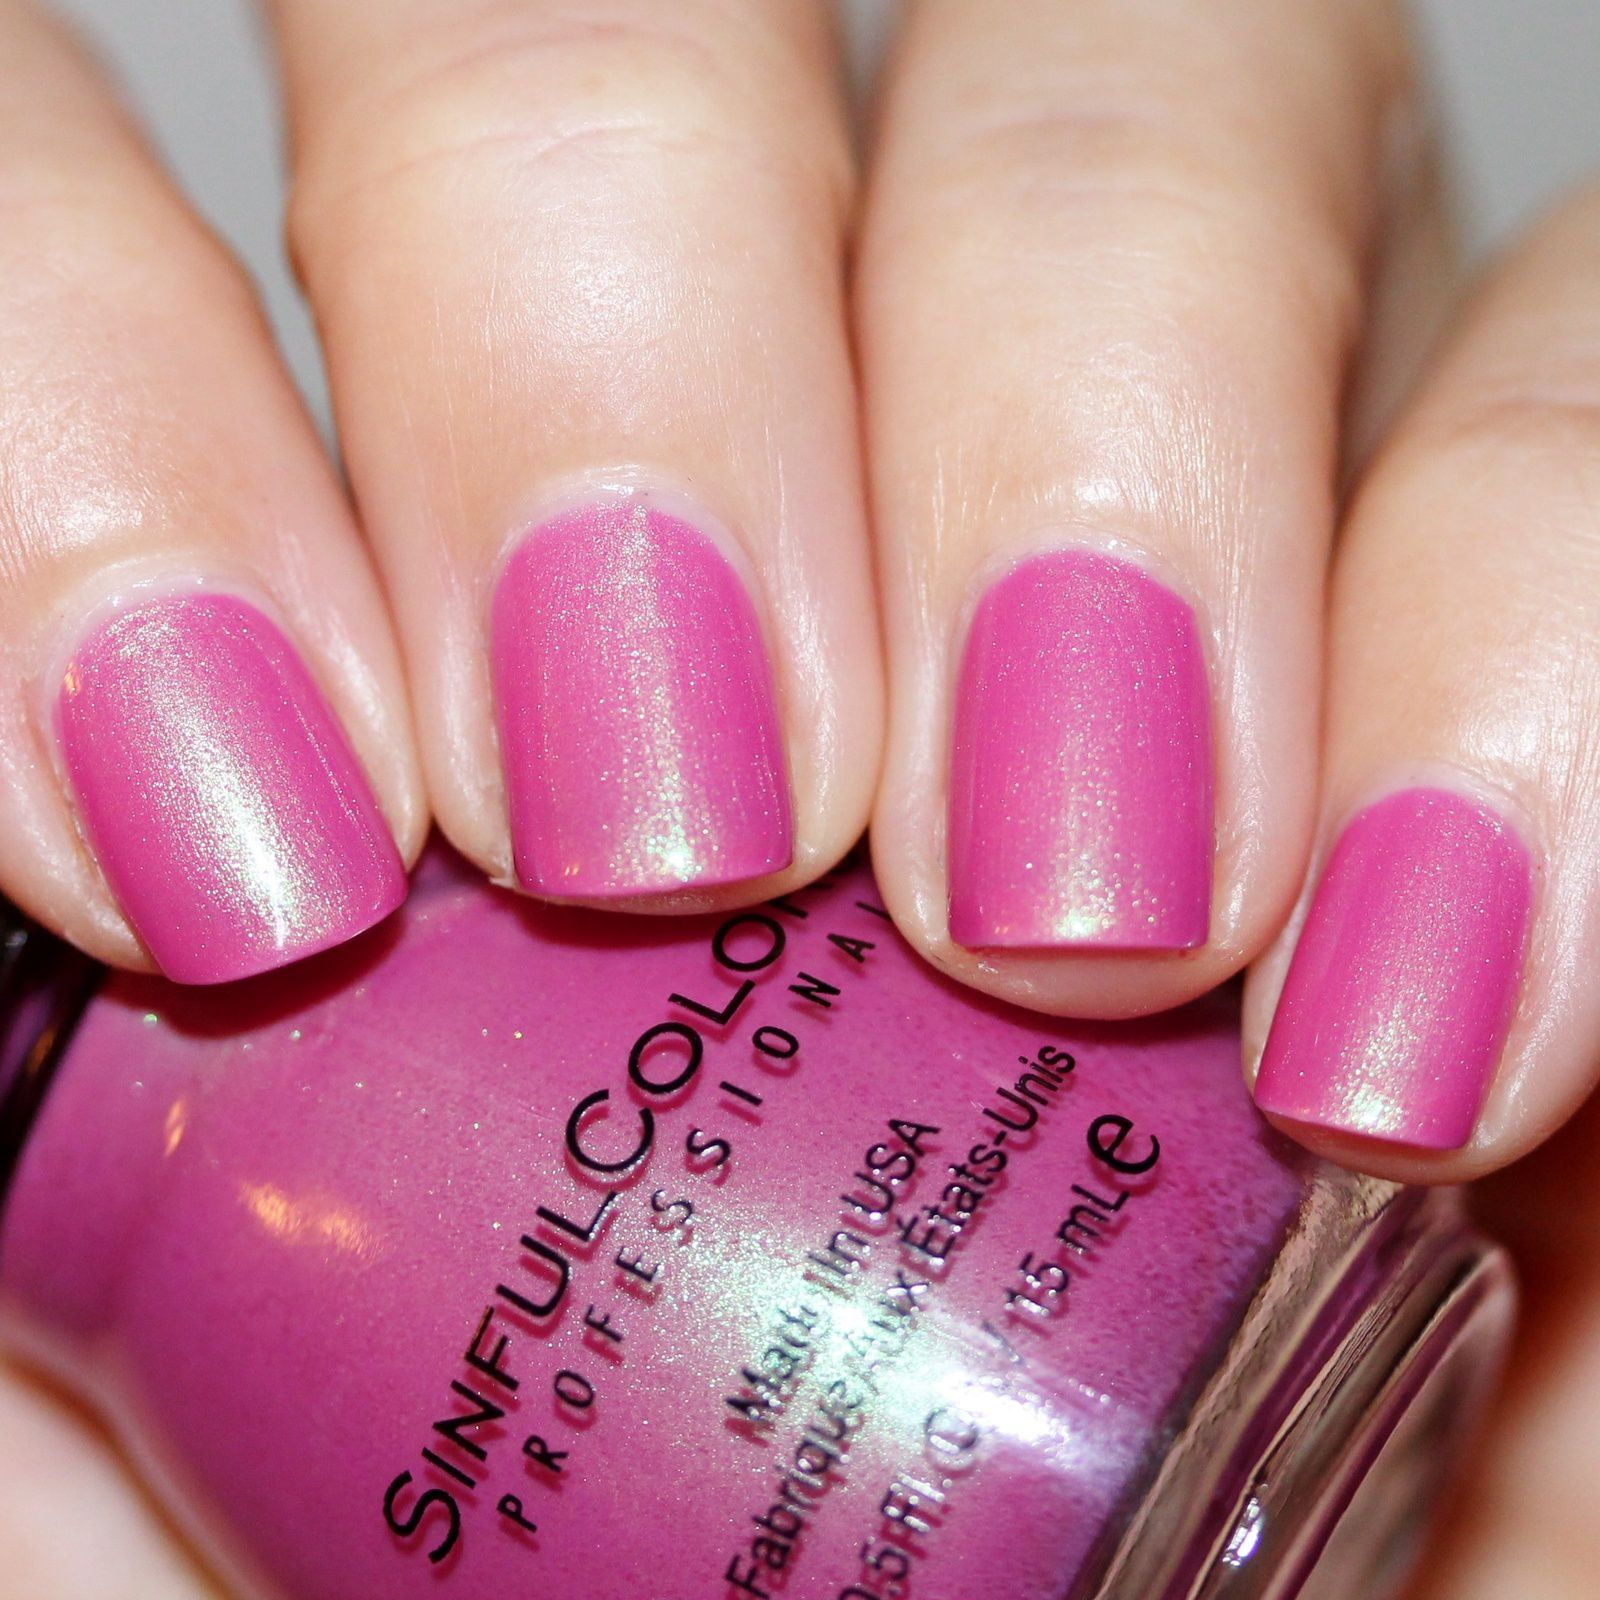 Essie Protein Base Coat / Sinful Colors Shell Out / HK Girl Top Coat